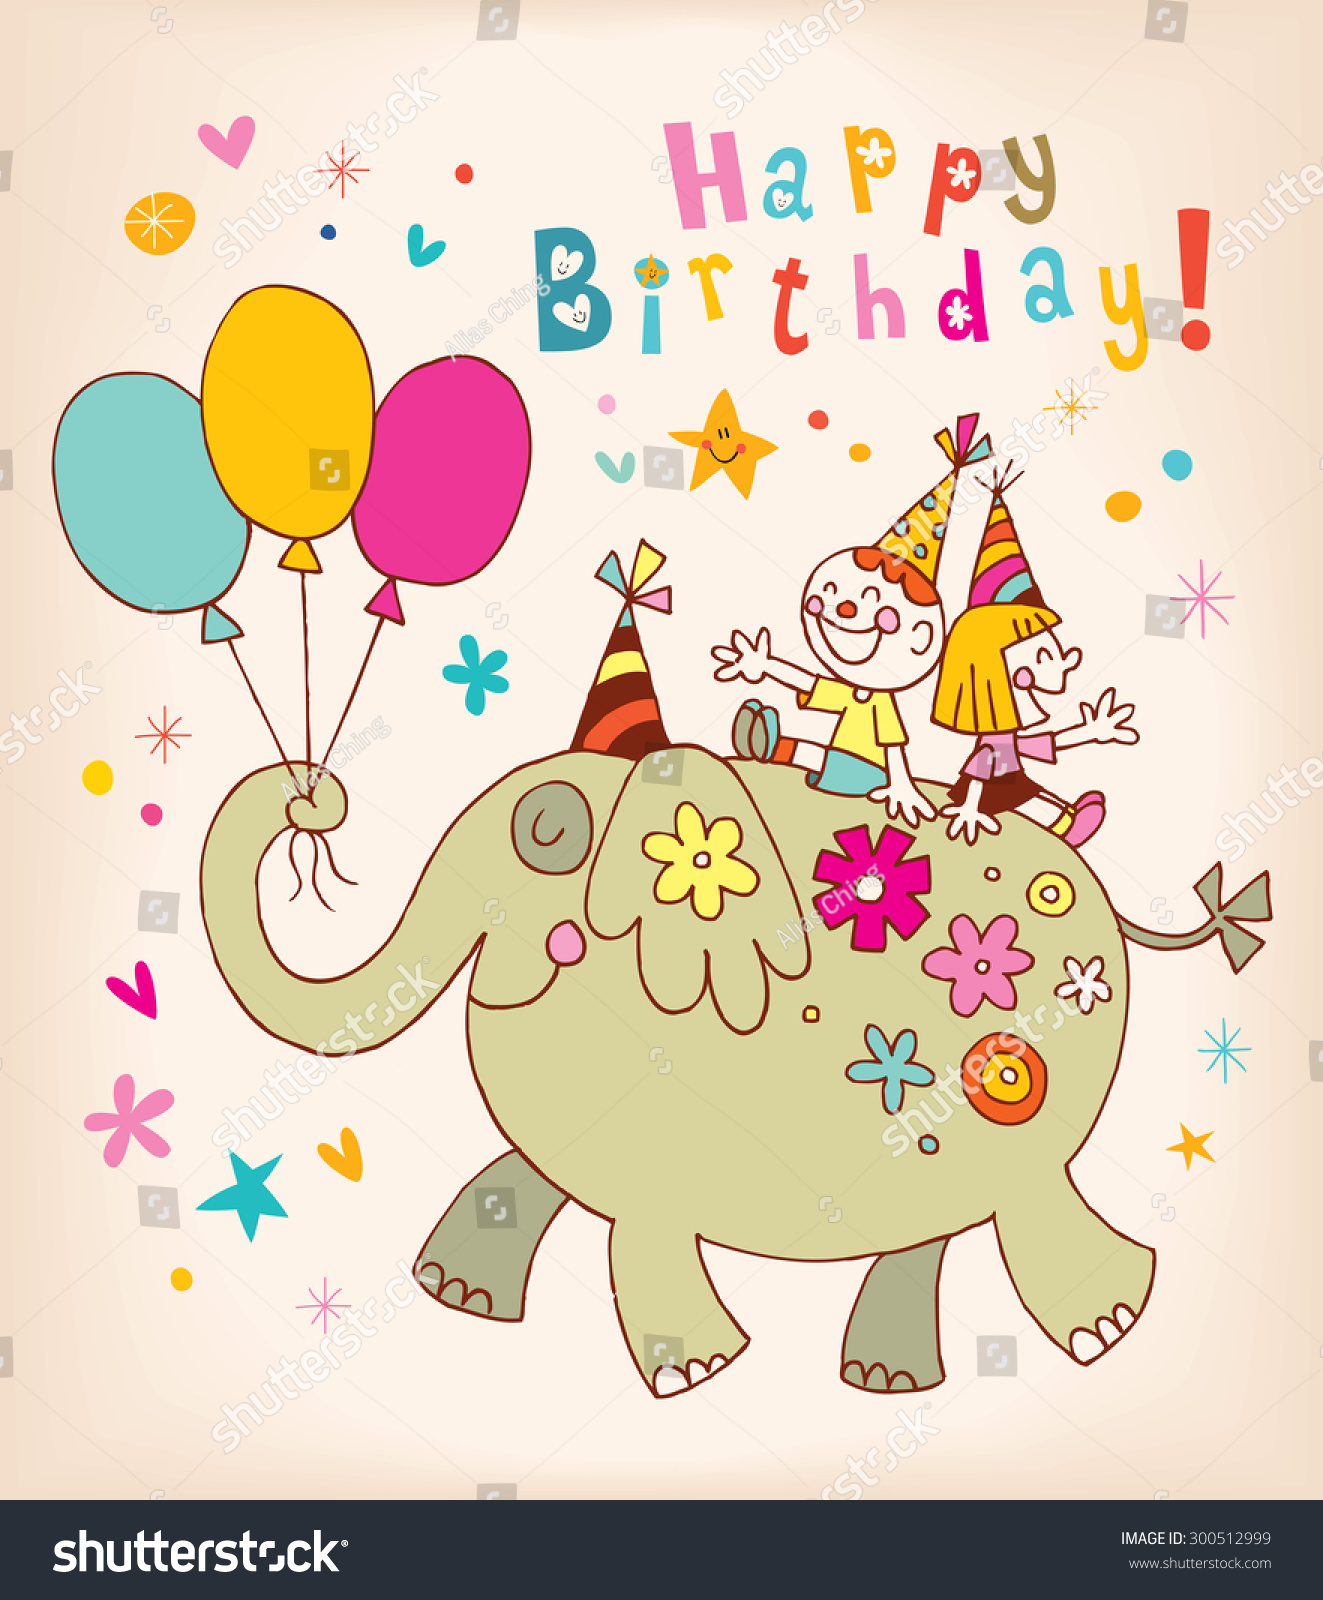 Happy birthday kids greeting card stock vector 300512999 happy birthday kids greeting card bookmarktalkfo Choice Image